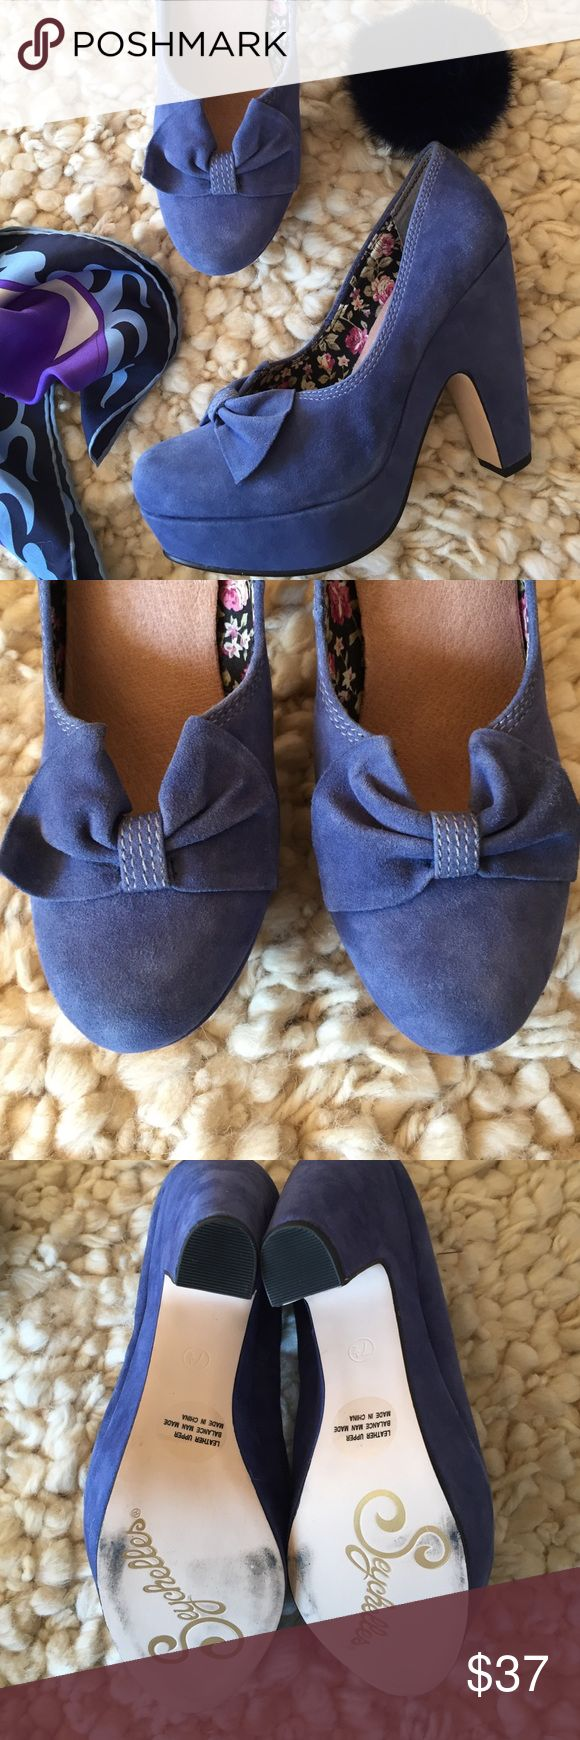 "Seychelles Ampersand Blue Suede Platform Pumps Channel your inner Pin-Up Girl in these adorable blue suede pumps! Never worn! Platform is 1.5"" and heel is 5"". Soft blue suede, no flaws. Seychelles Shoes Platforms"